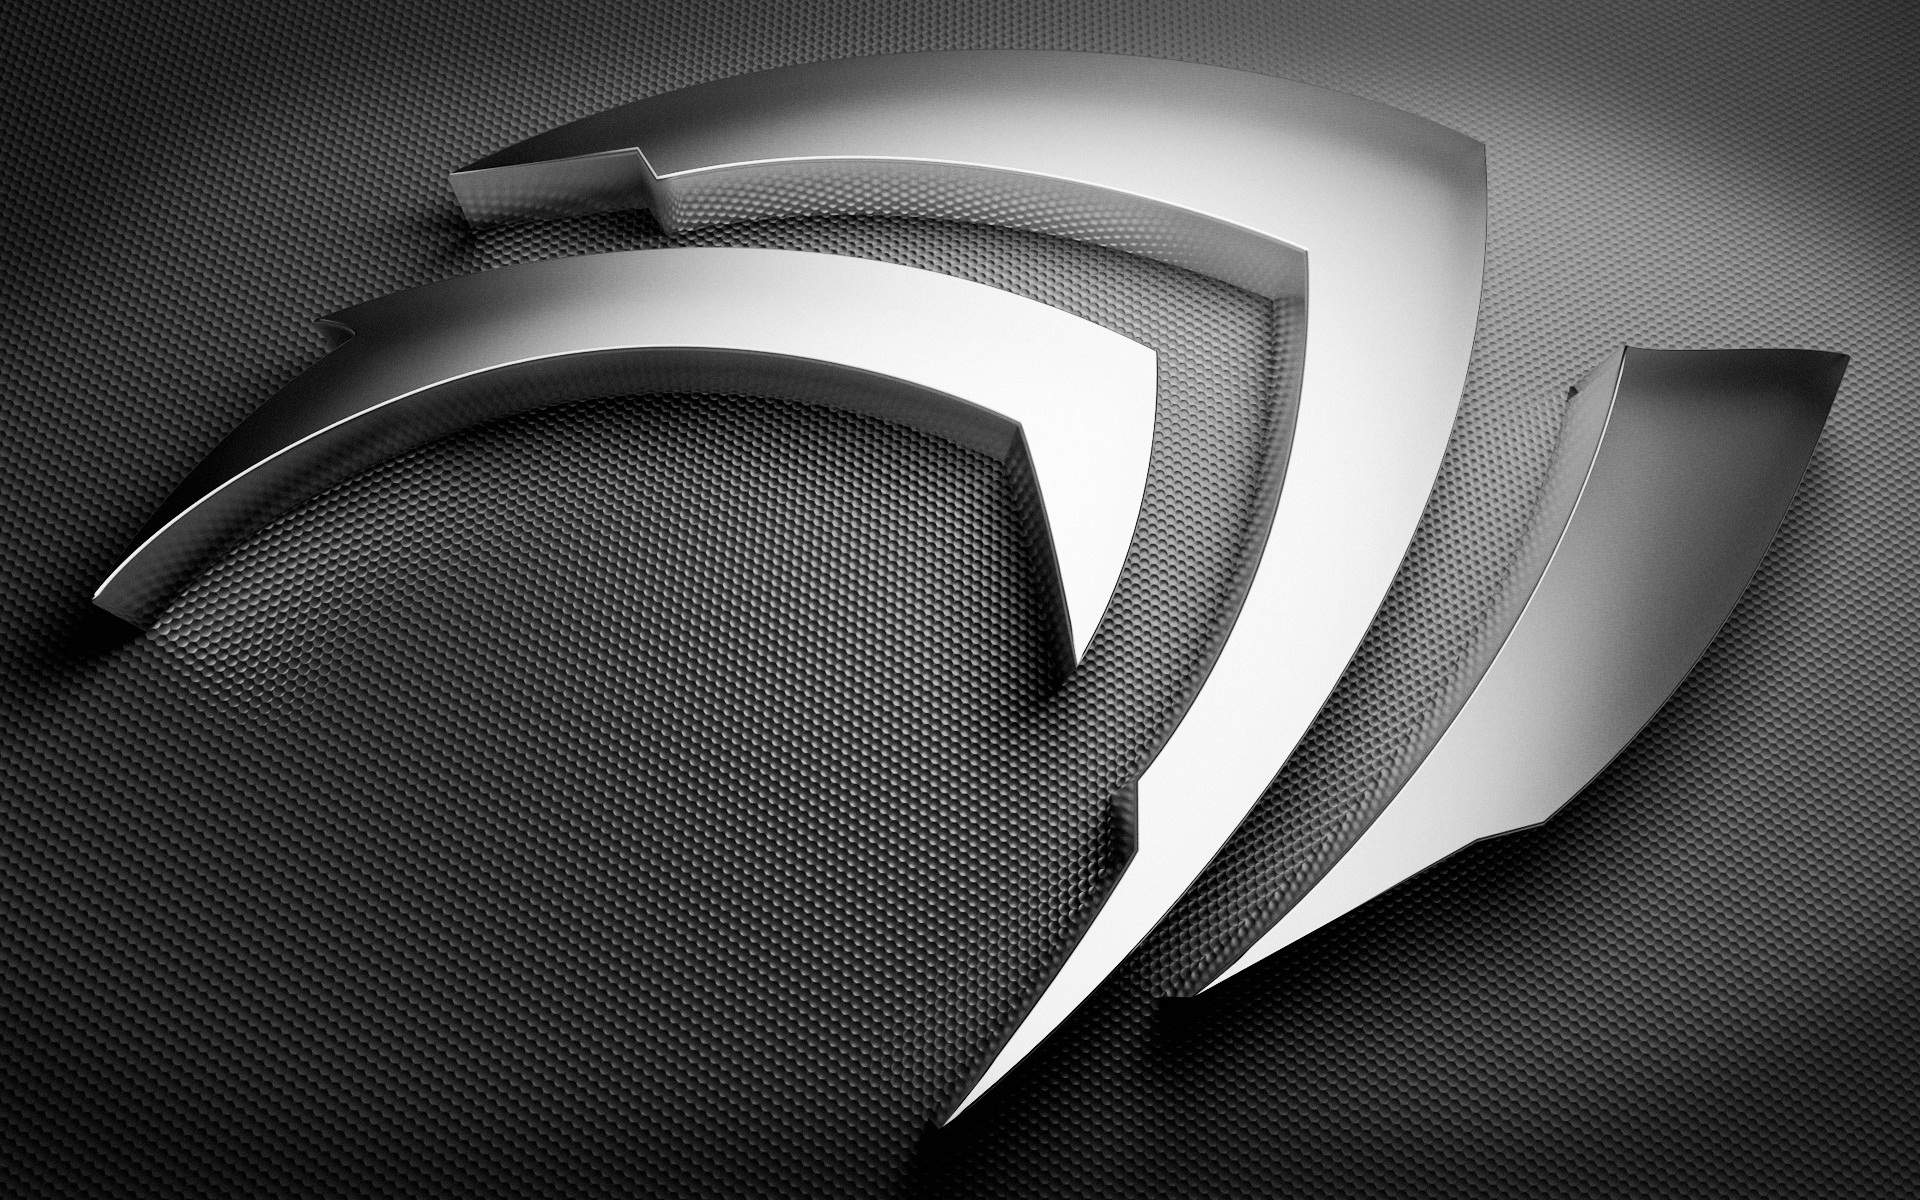 Nvidia 4k Wallpapers For Your Desktop Or Mobile Screen Free And